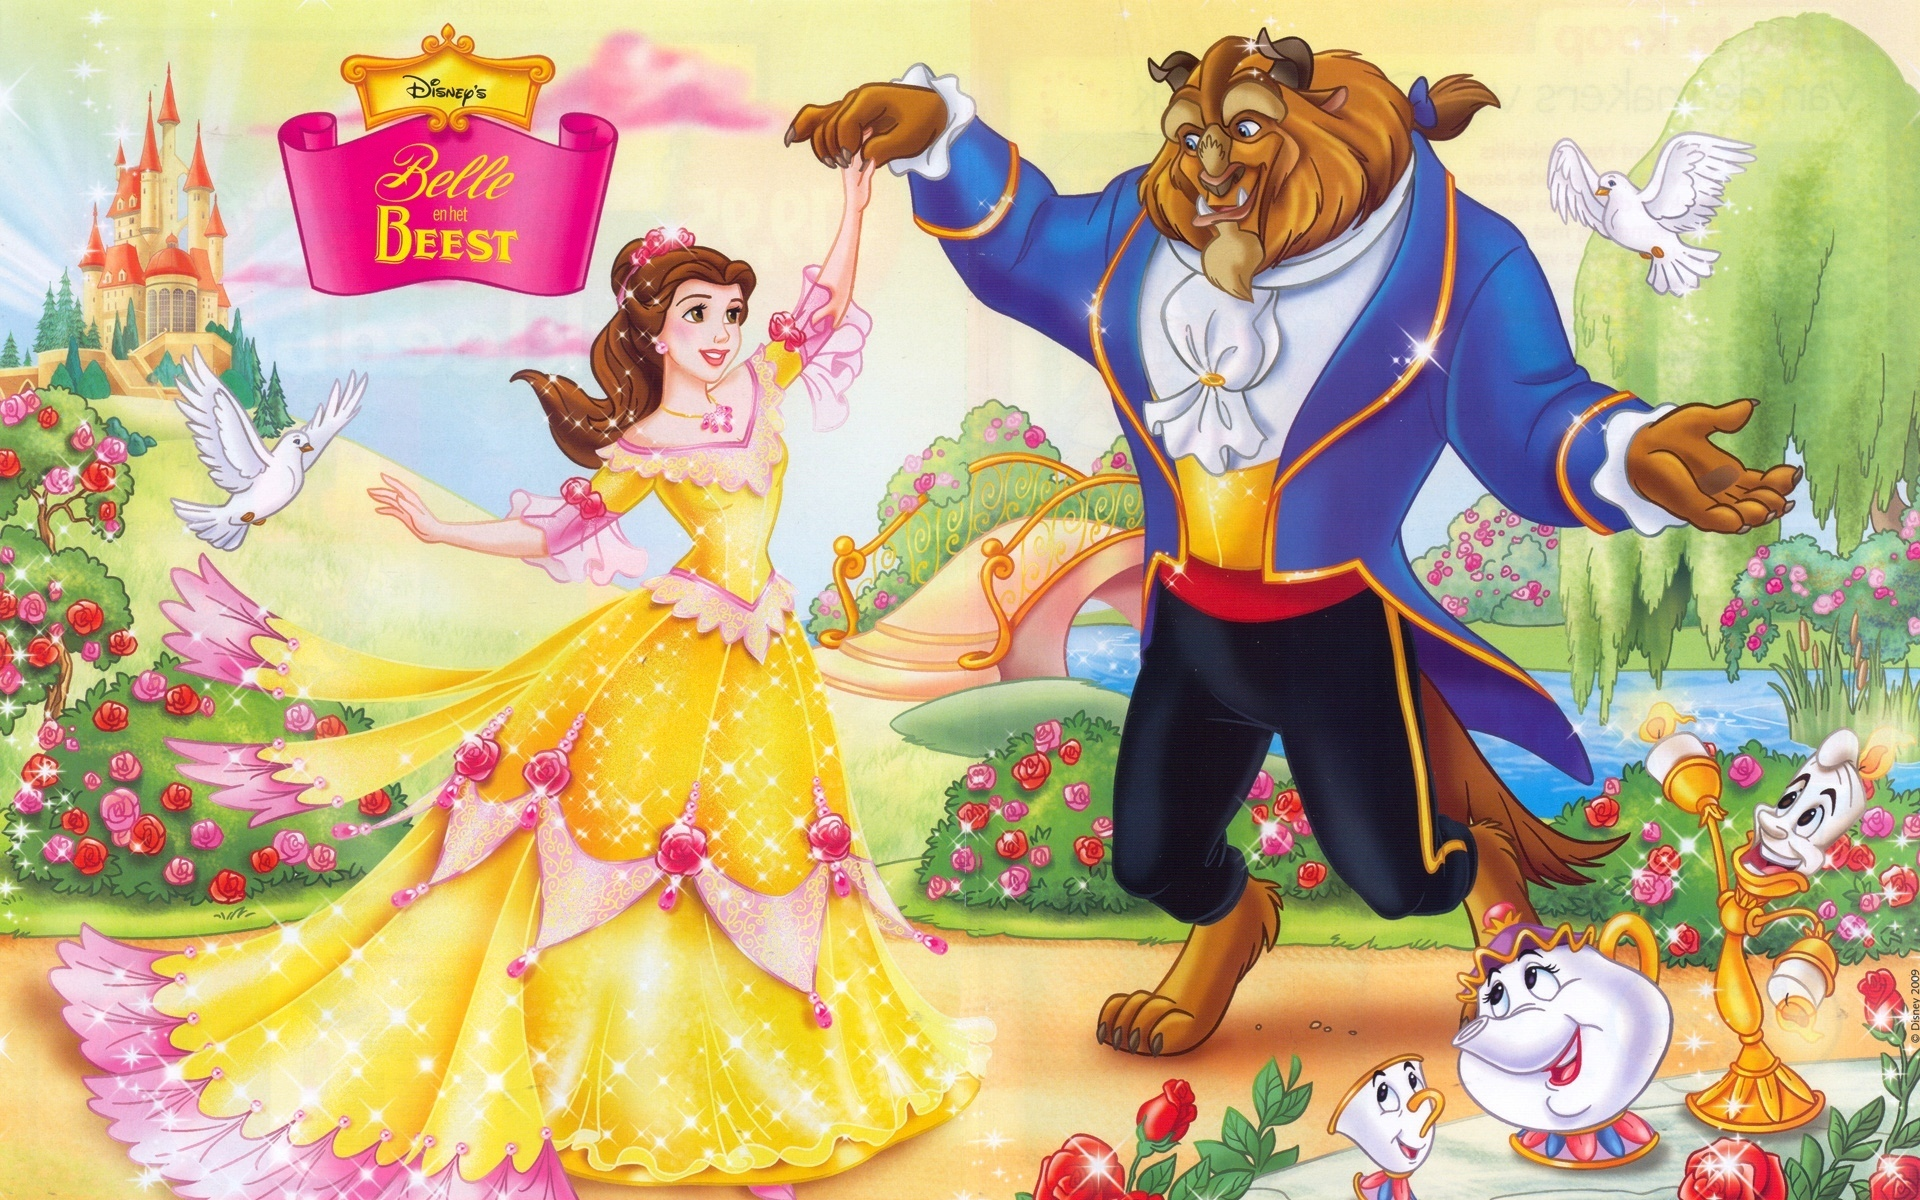 Belle And Beast Disney Couples Wallpaper 7359499 Fanpop